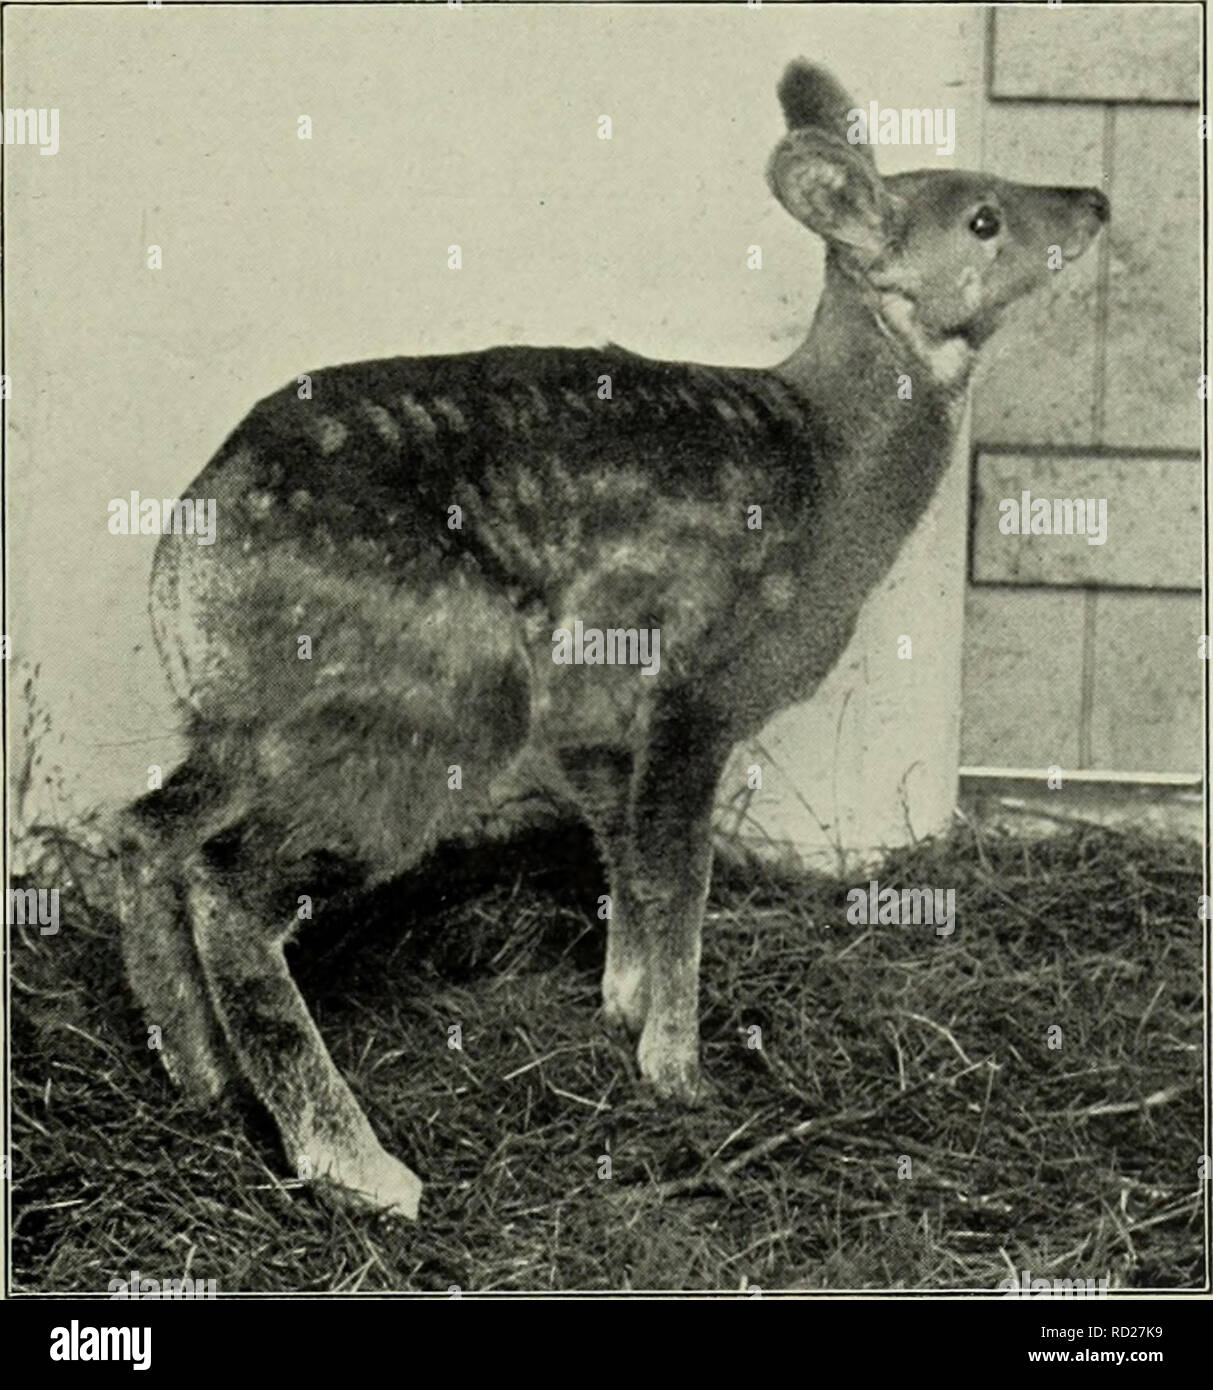 . The deer of all lands; a history of the family Cervidæ living and extinct. Deer; Deer, Fossil; Cervidae; Cervidae, Fossil. Himalayan Musk 313 numerous in the more remote valleys north of Kashmir, such as Tilel and Wardwan, but even in such districts it now appears to have become very scarce, although the game laws recently put in force in Kashmir territory may be doing something towards checking the diminution in its numbers. Musk-deer are solitary animals, generally going about alone, and it is seldom, if ever, that more than two adults are seen in company. Although they are chiefly nocturn - Stock Image